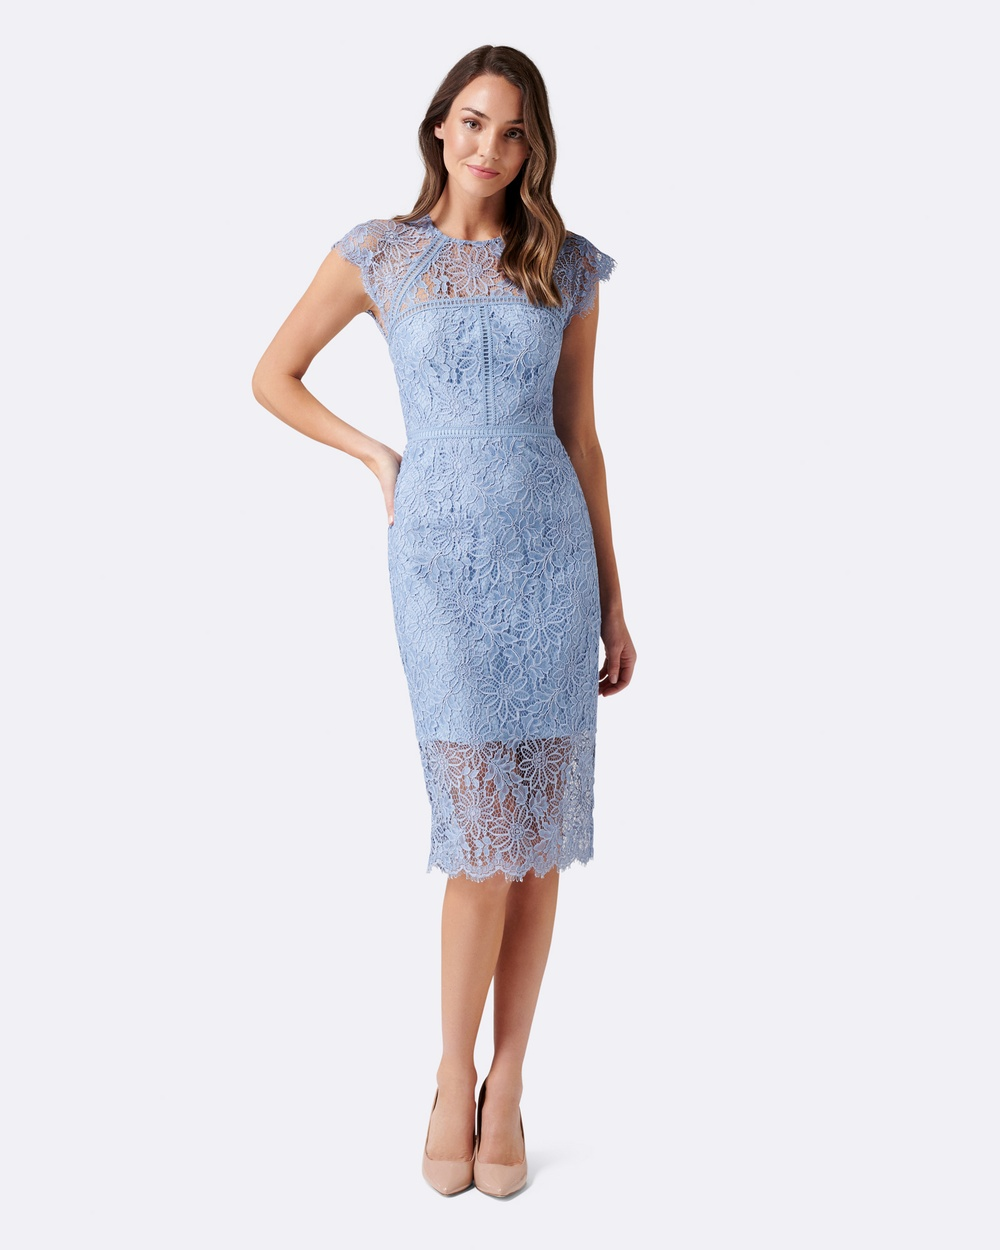 Forever New Tara Lace Pencil Dress Bridesmaid Dresses Brilliant Blue Tara Lace Pencil Dress